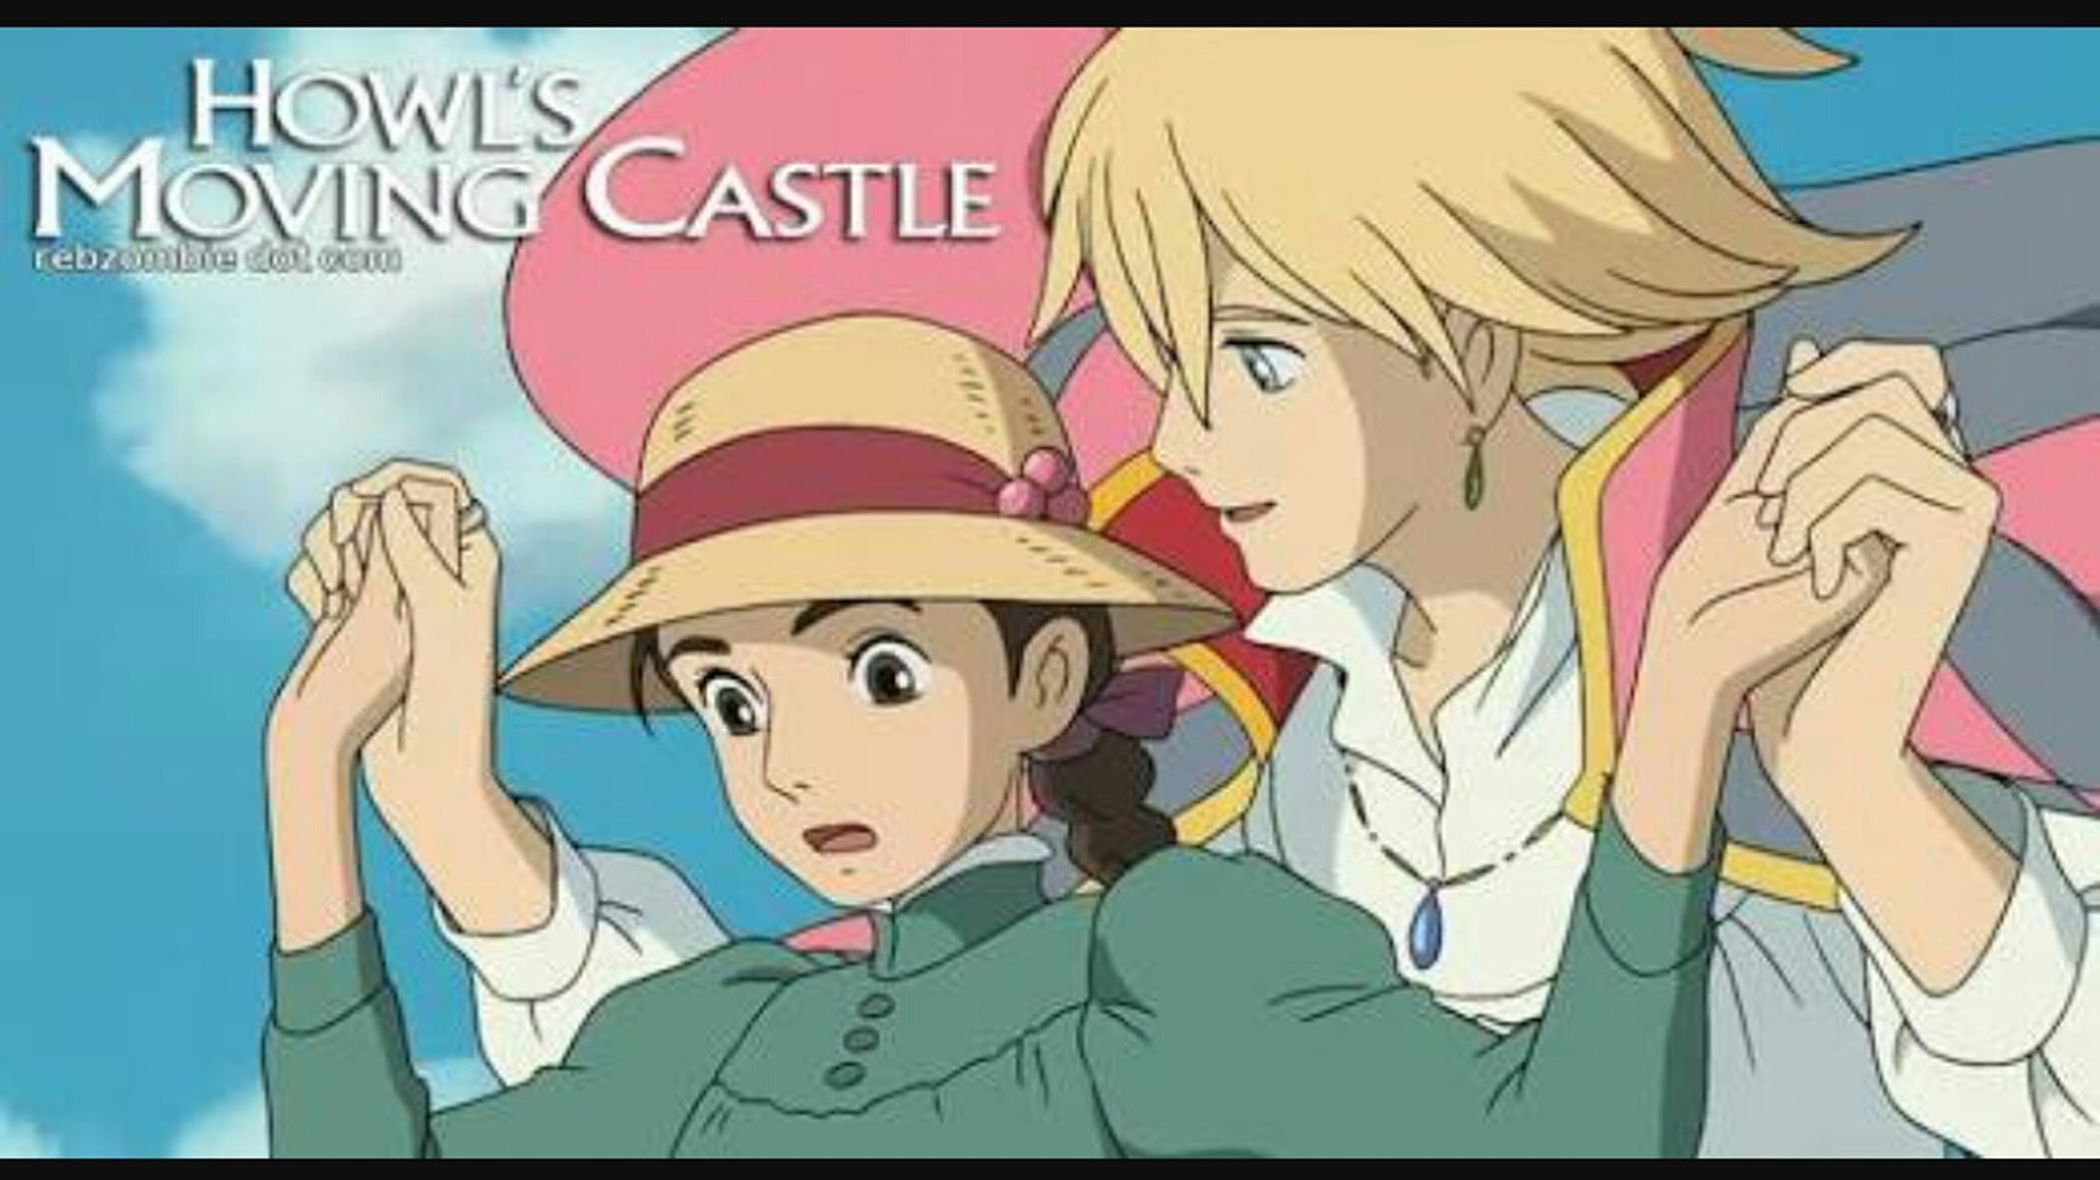 Howl's Moving Castle Iyi Iyi 😜 بهترین کارتون لایک Takip :) Aşk♥ لیلا♡ Mükemmel Harika عالی Her Günün فیلم Love Beauty Film MOVIE Top10 👍👍👍👍👍👍👍👍 ⭐⭐⭐⭐⭐